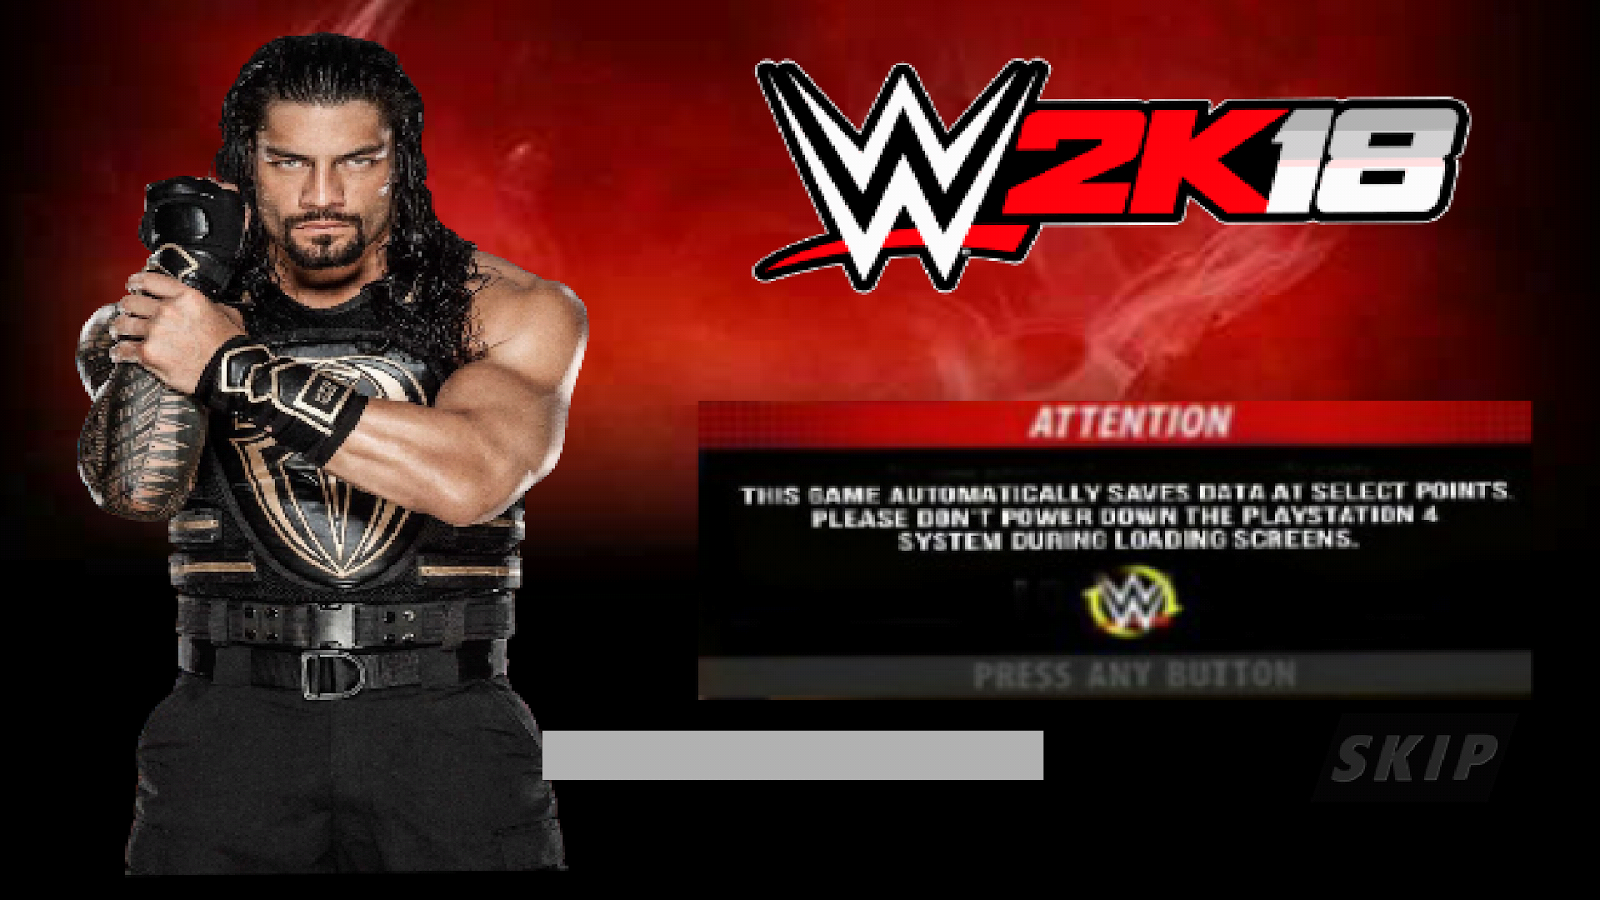 WWE 2K18 - WRESTLING REVOLUTION 3D WWE MOD - Studio Android